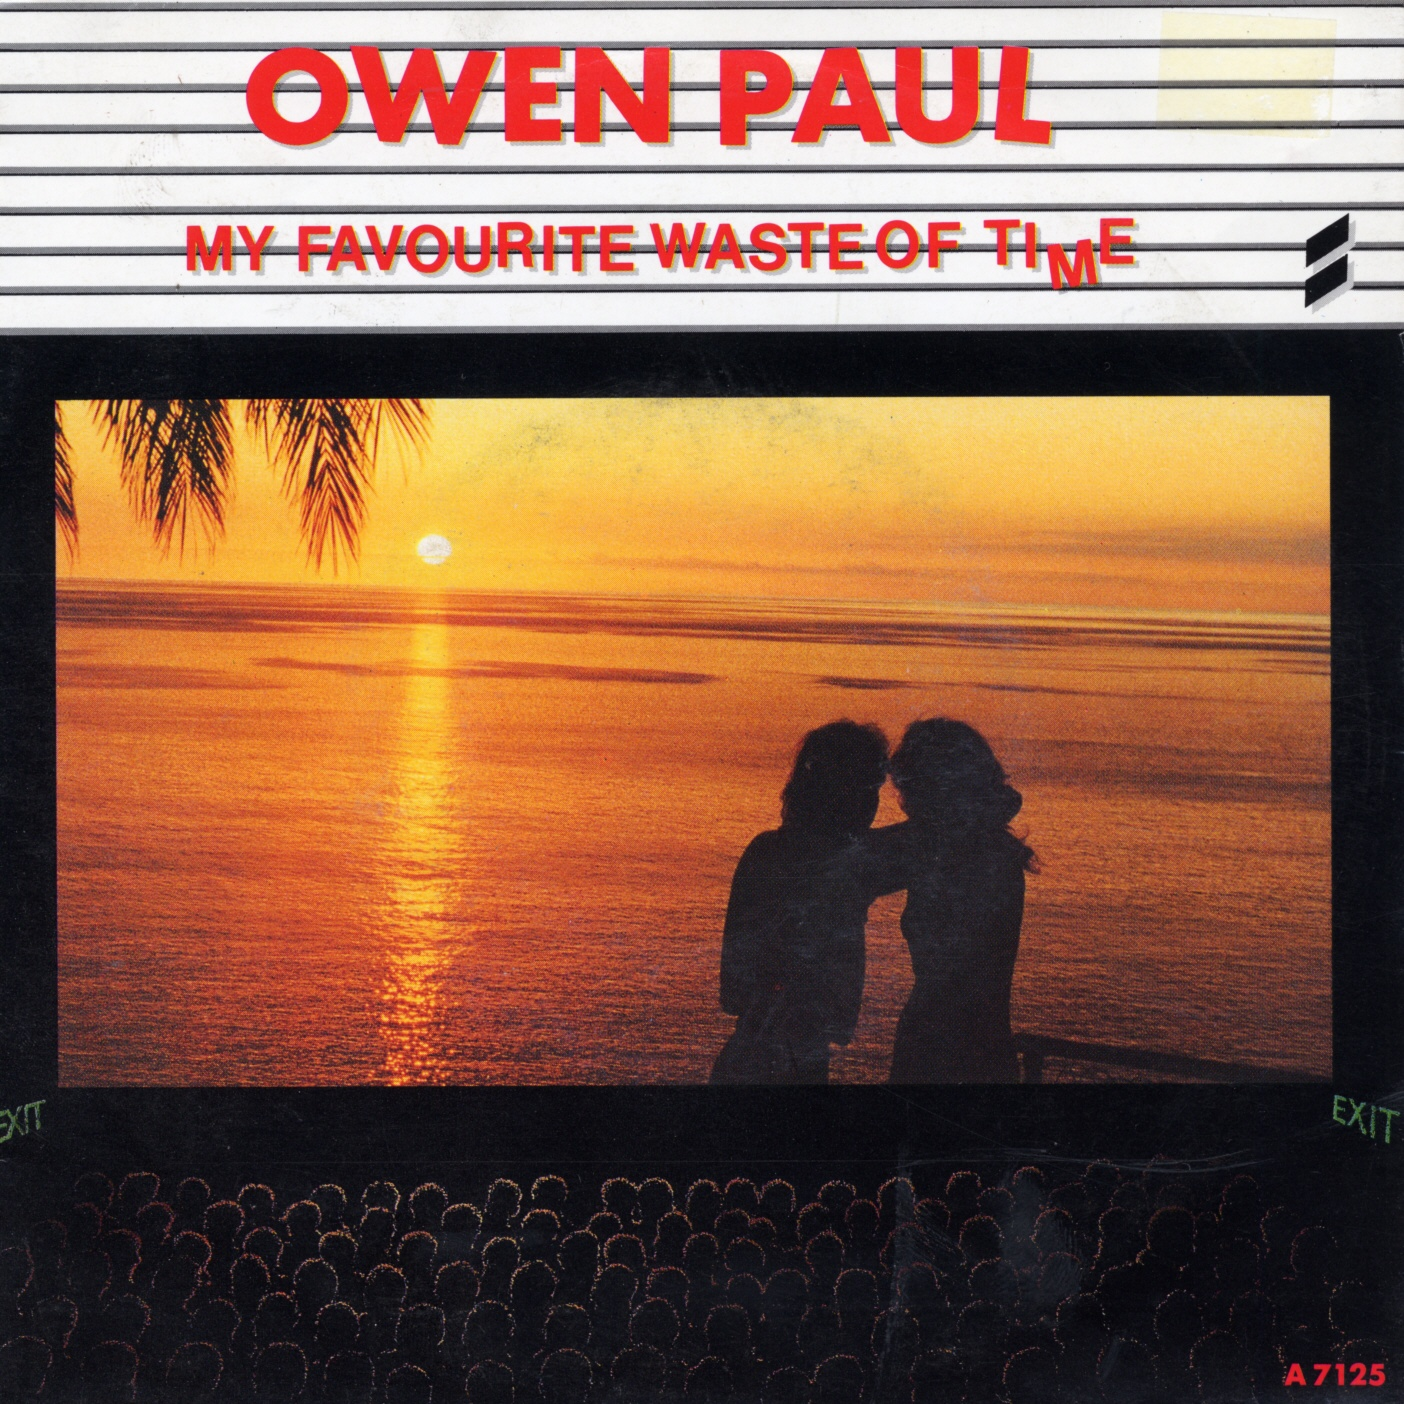 Cover: My favourite waste of time, Owen Paul